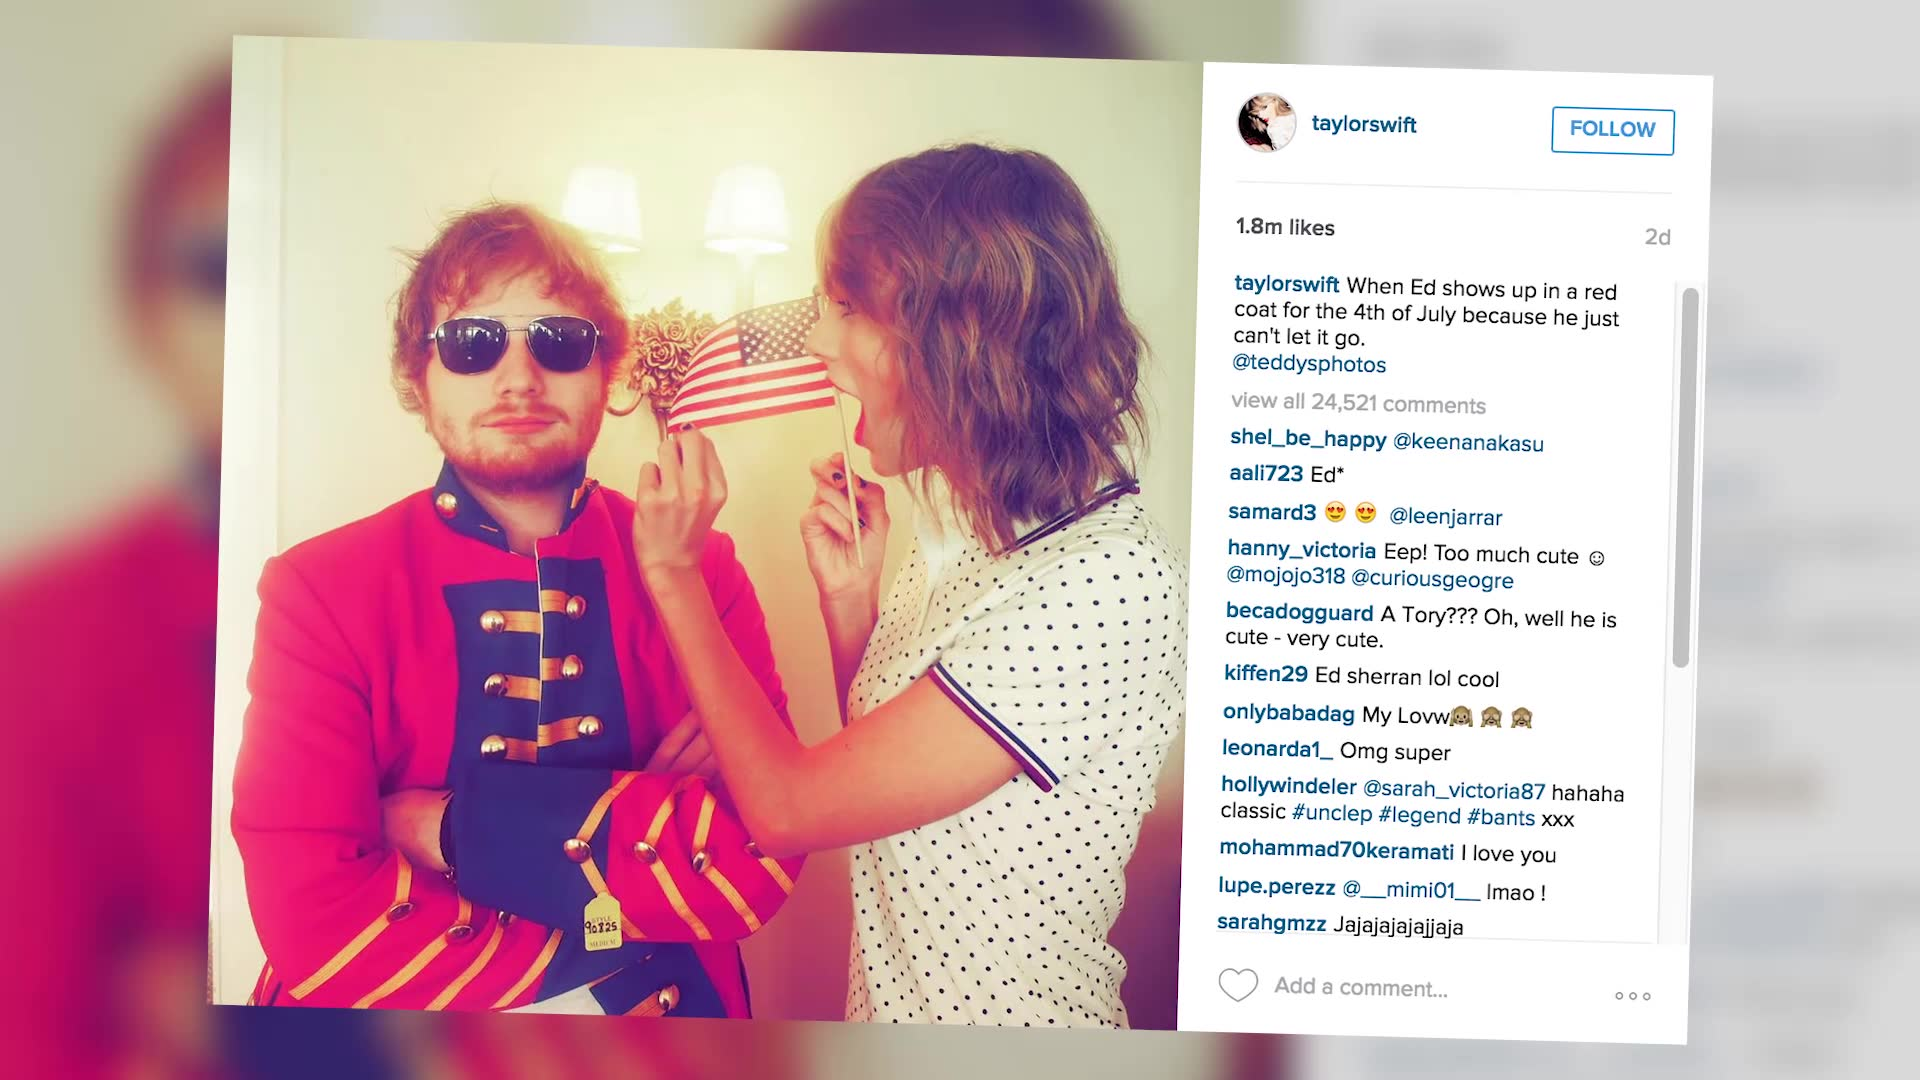 Taylor Swift Among Stars To Share Their Cute July 4th Snaps